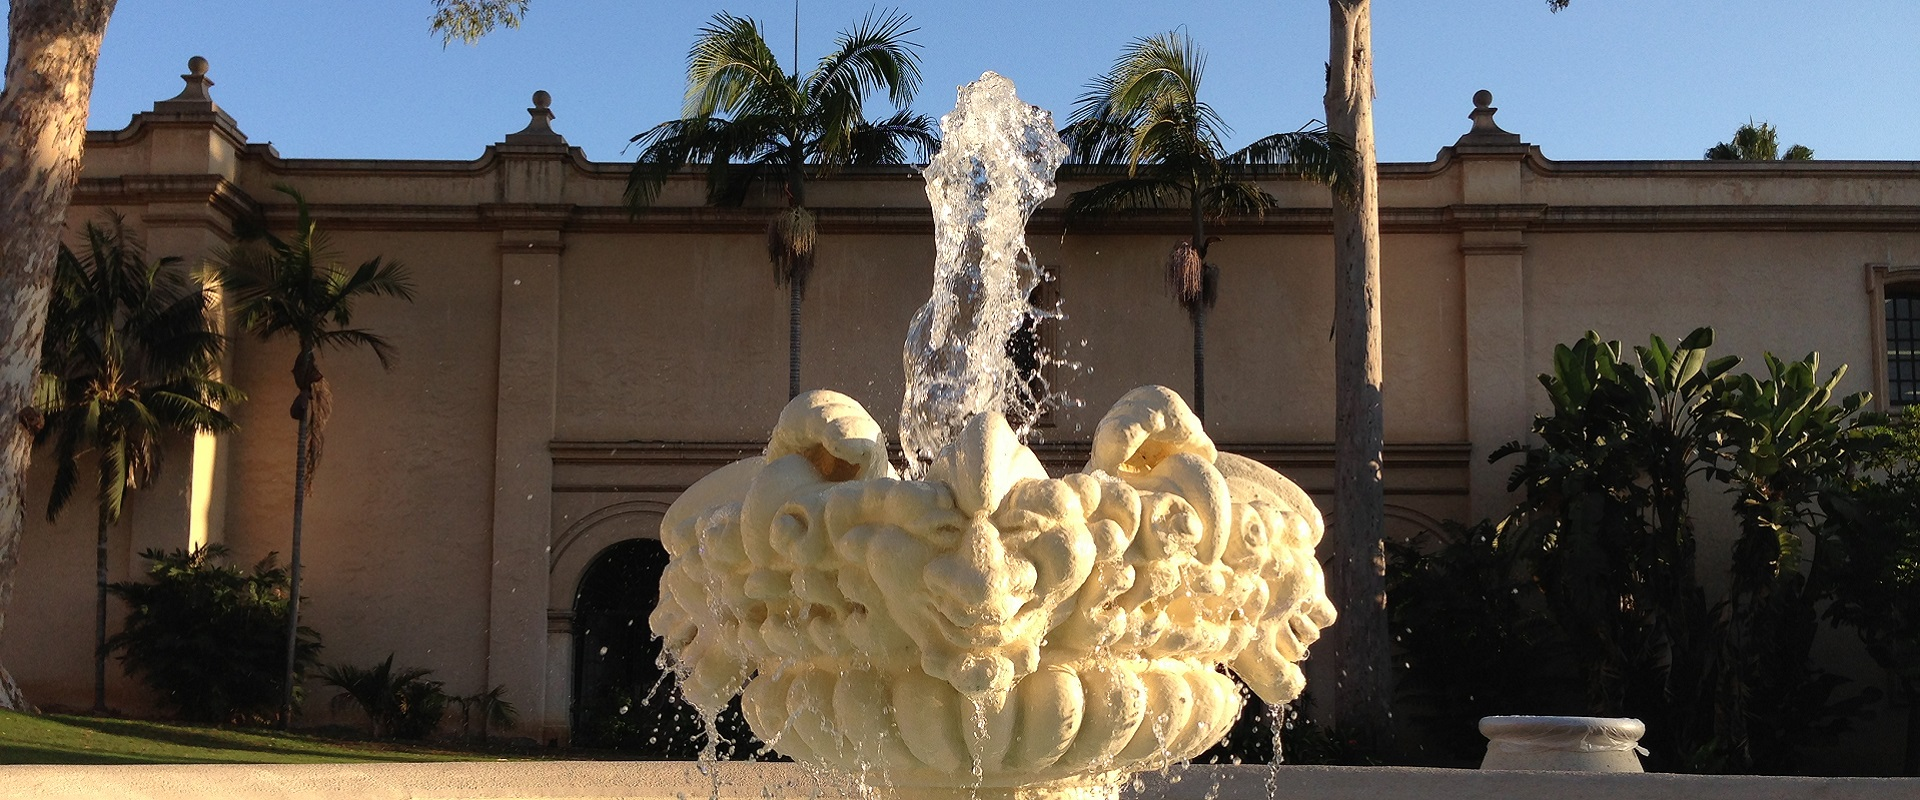 Fountain in Balboa Park